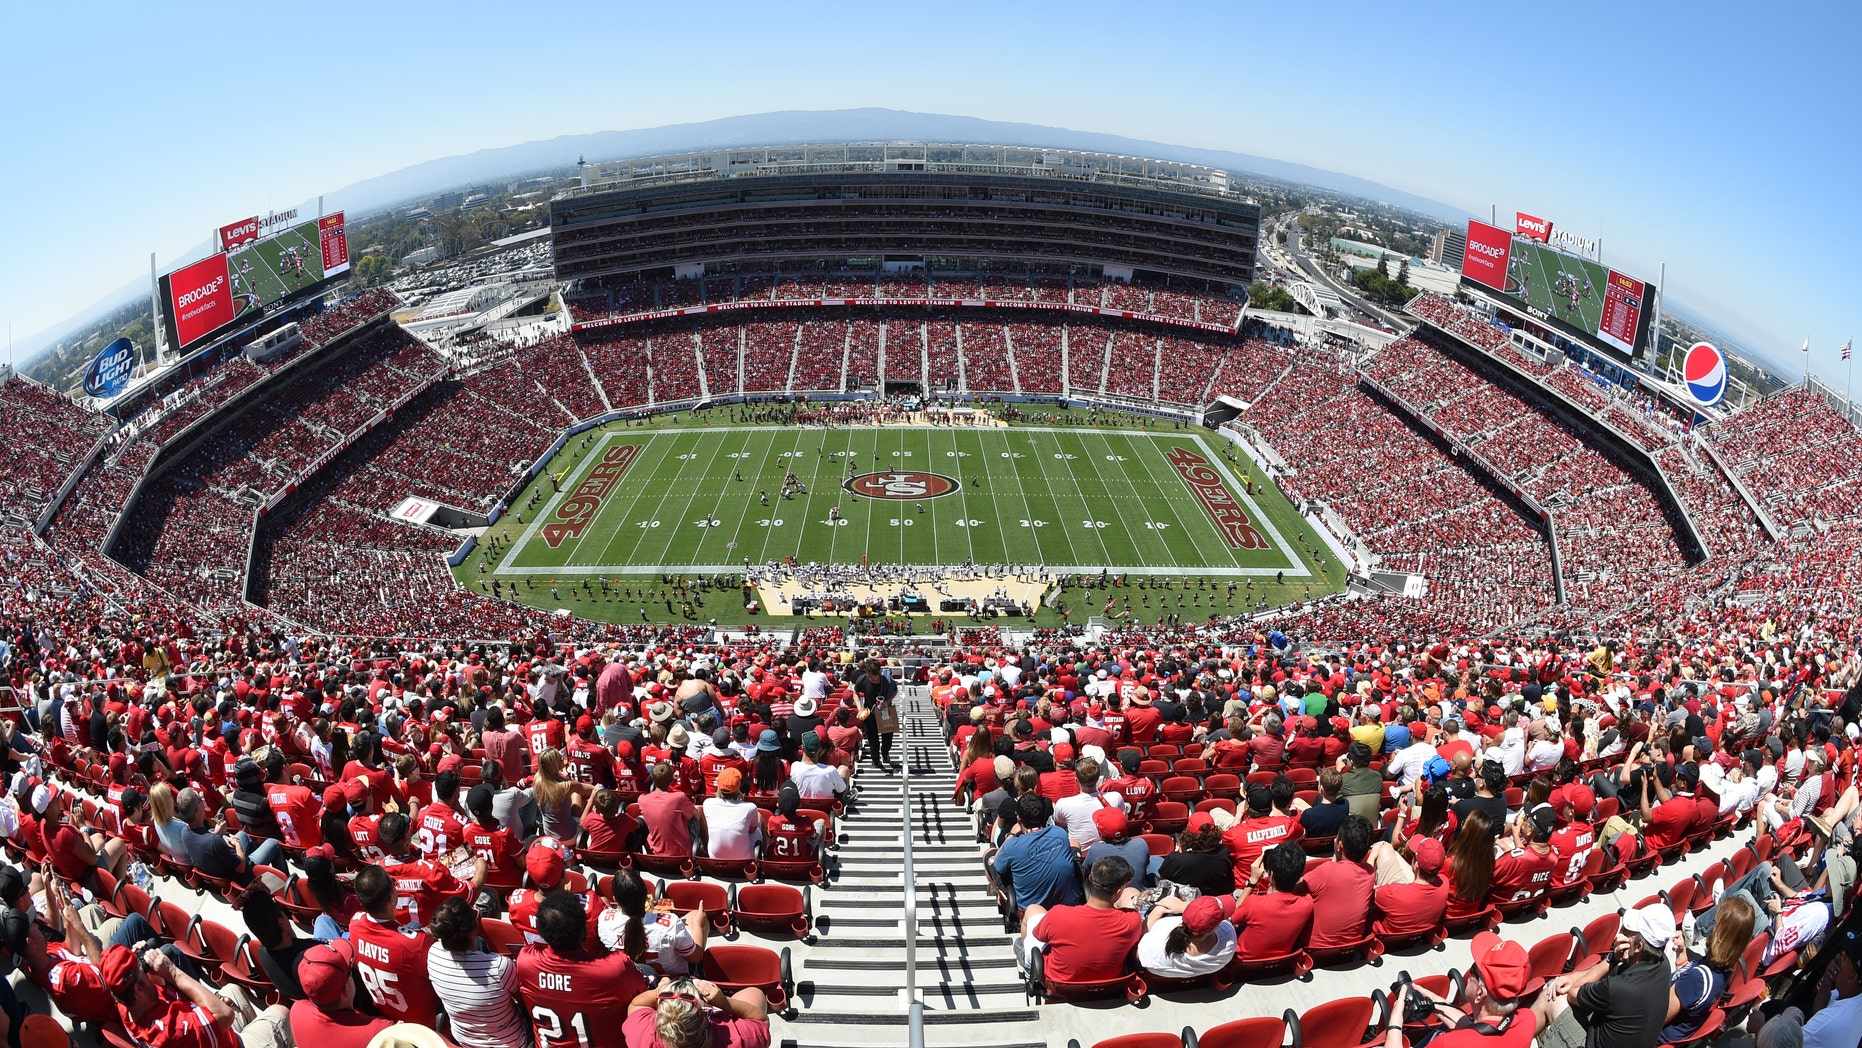 August 17, 2014; Santa Clara, CA, USA; General view of Levi's Stadium during the first quarter between the San Francisco 49ers and the Denver Broncos.